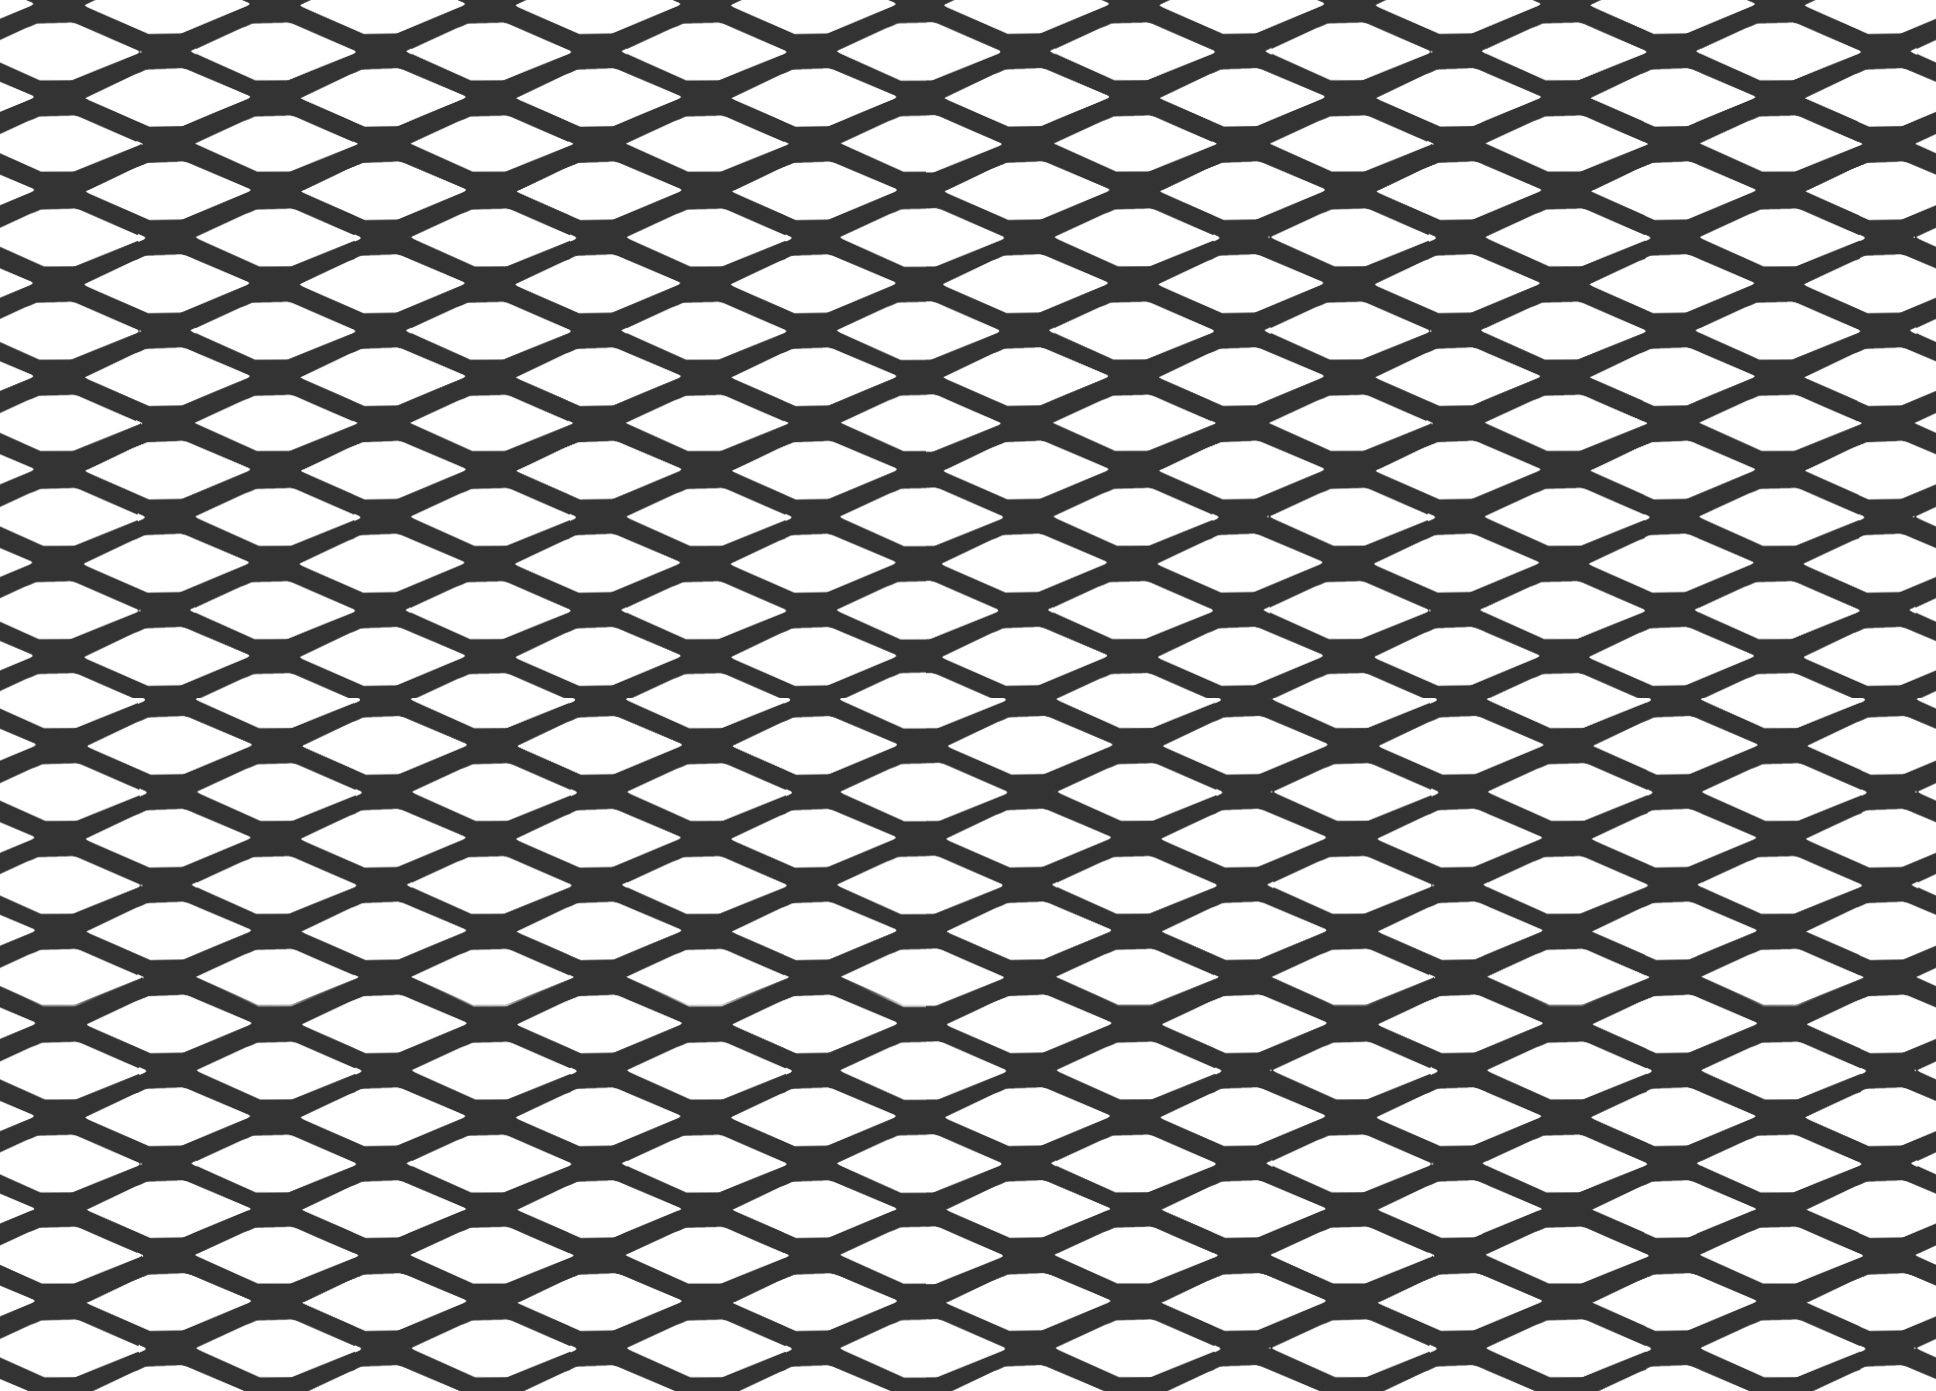 Net png texture. Grill image